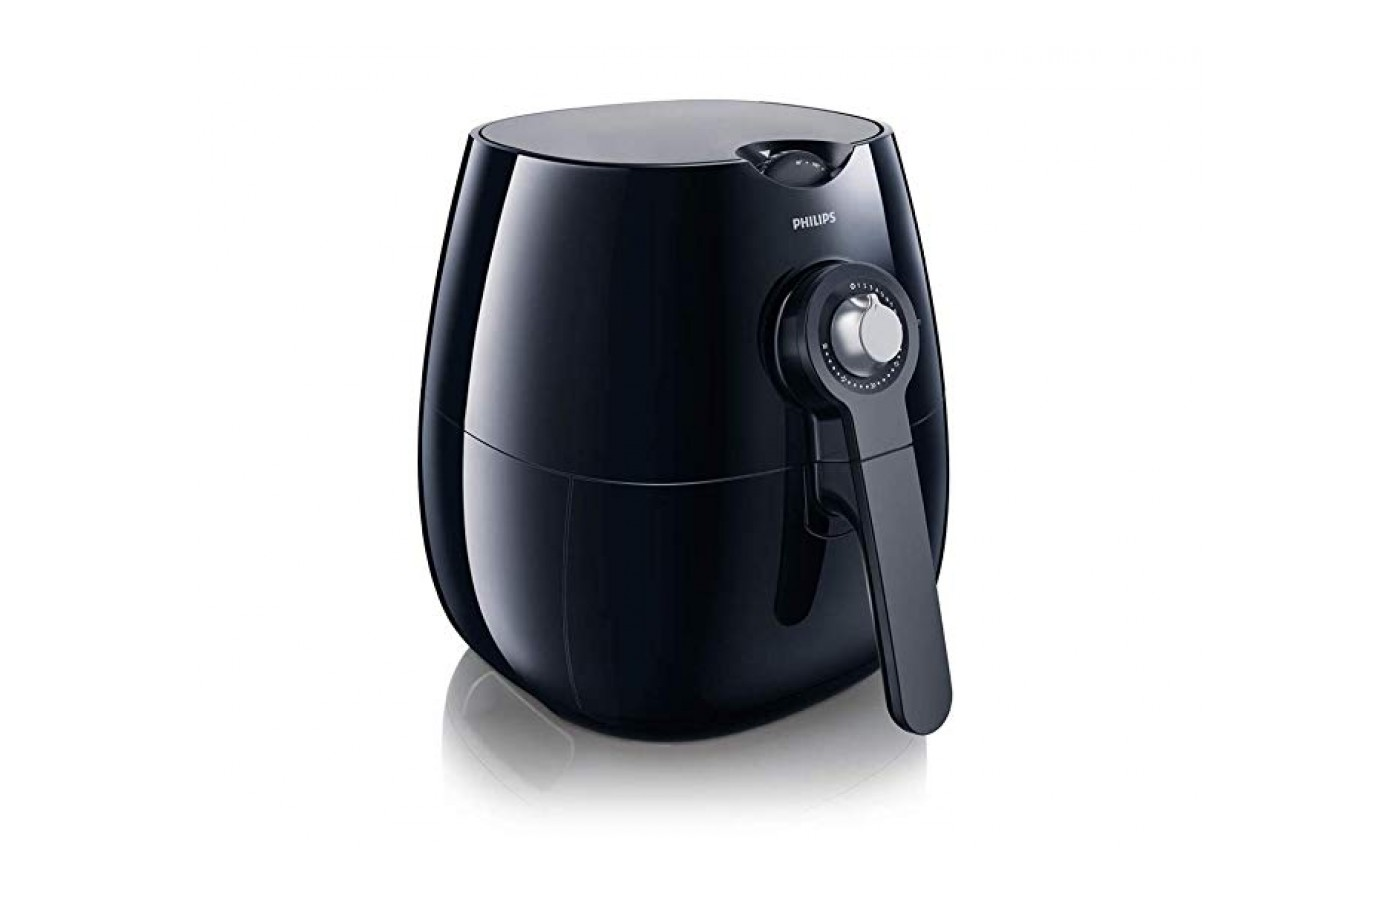 This little fryer will look good in any kitchen.